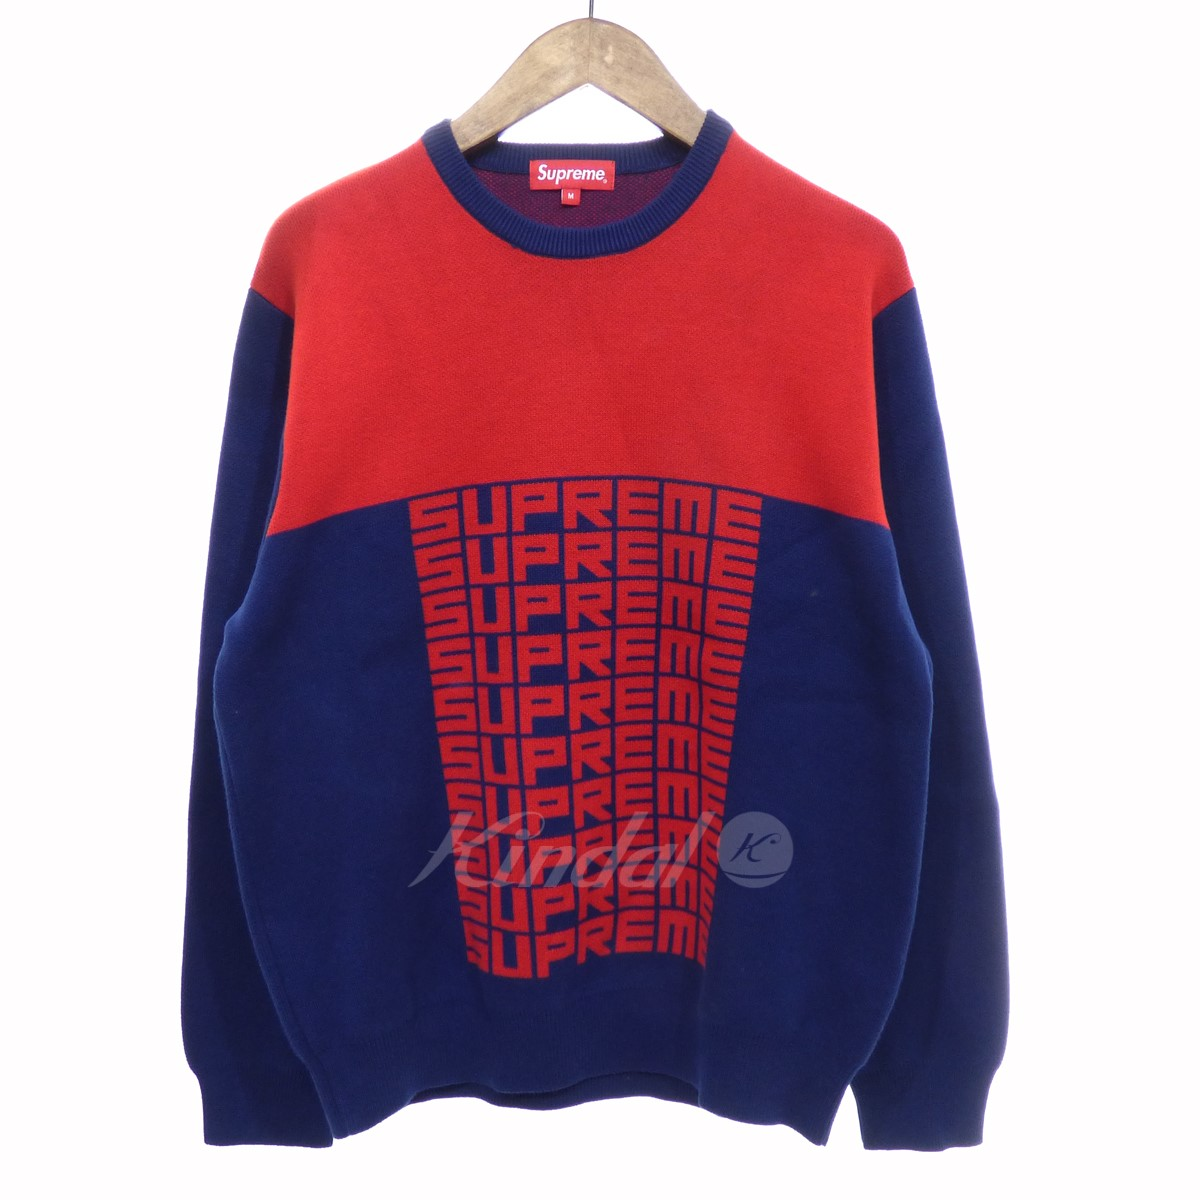 Supreme Sweater Supreme Logo Repeat Sweater Knit Red Size M シュプリーム